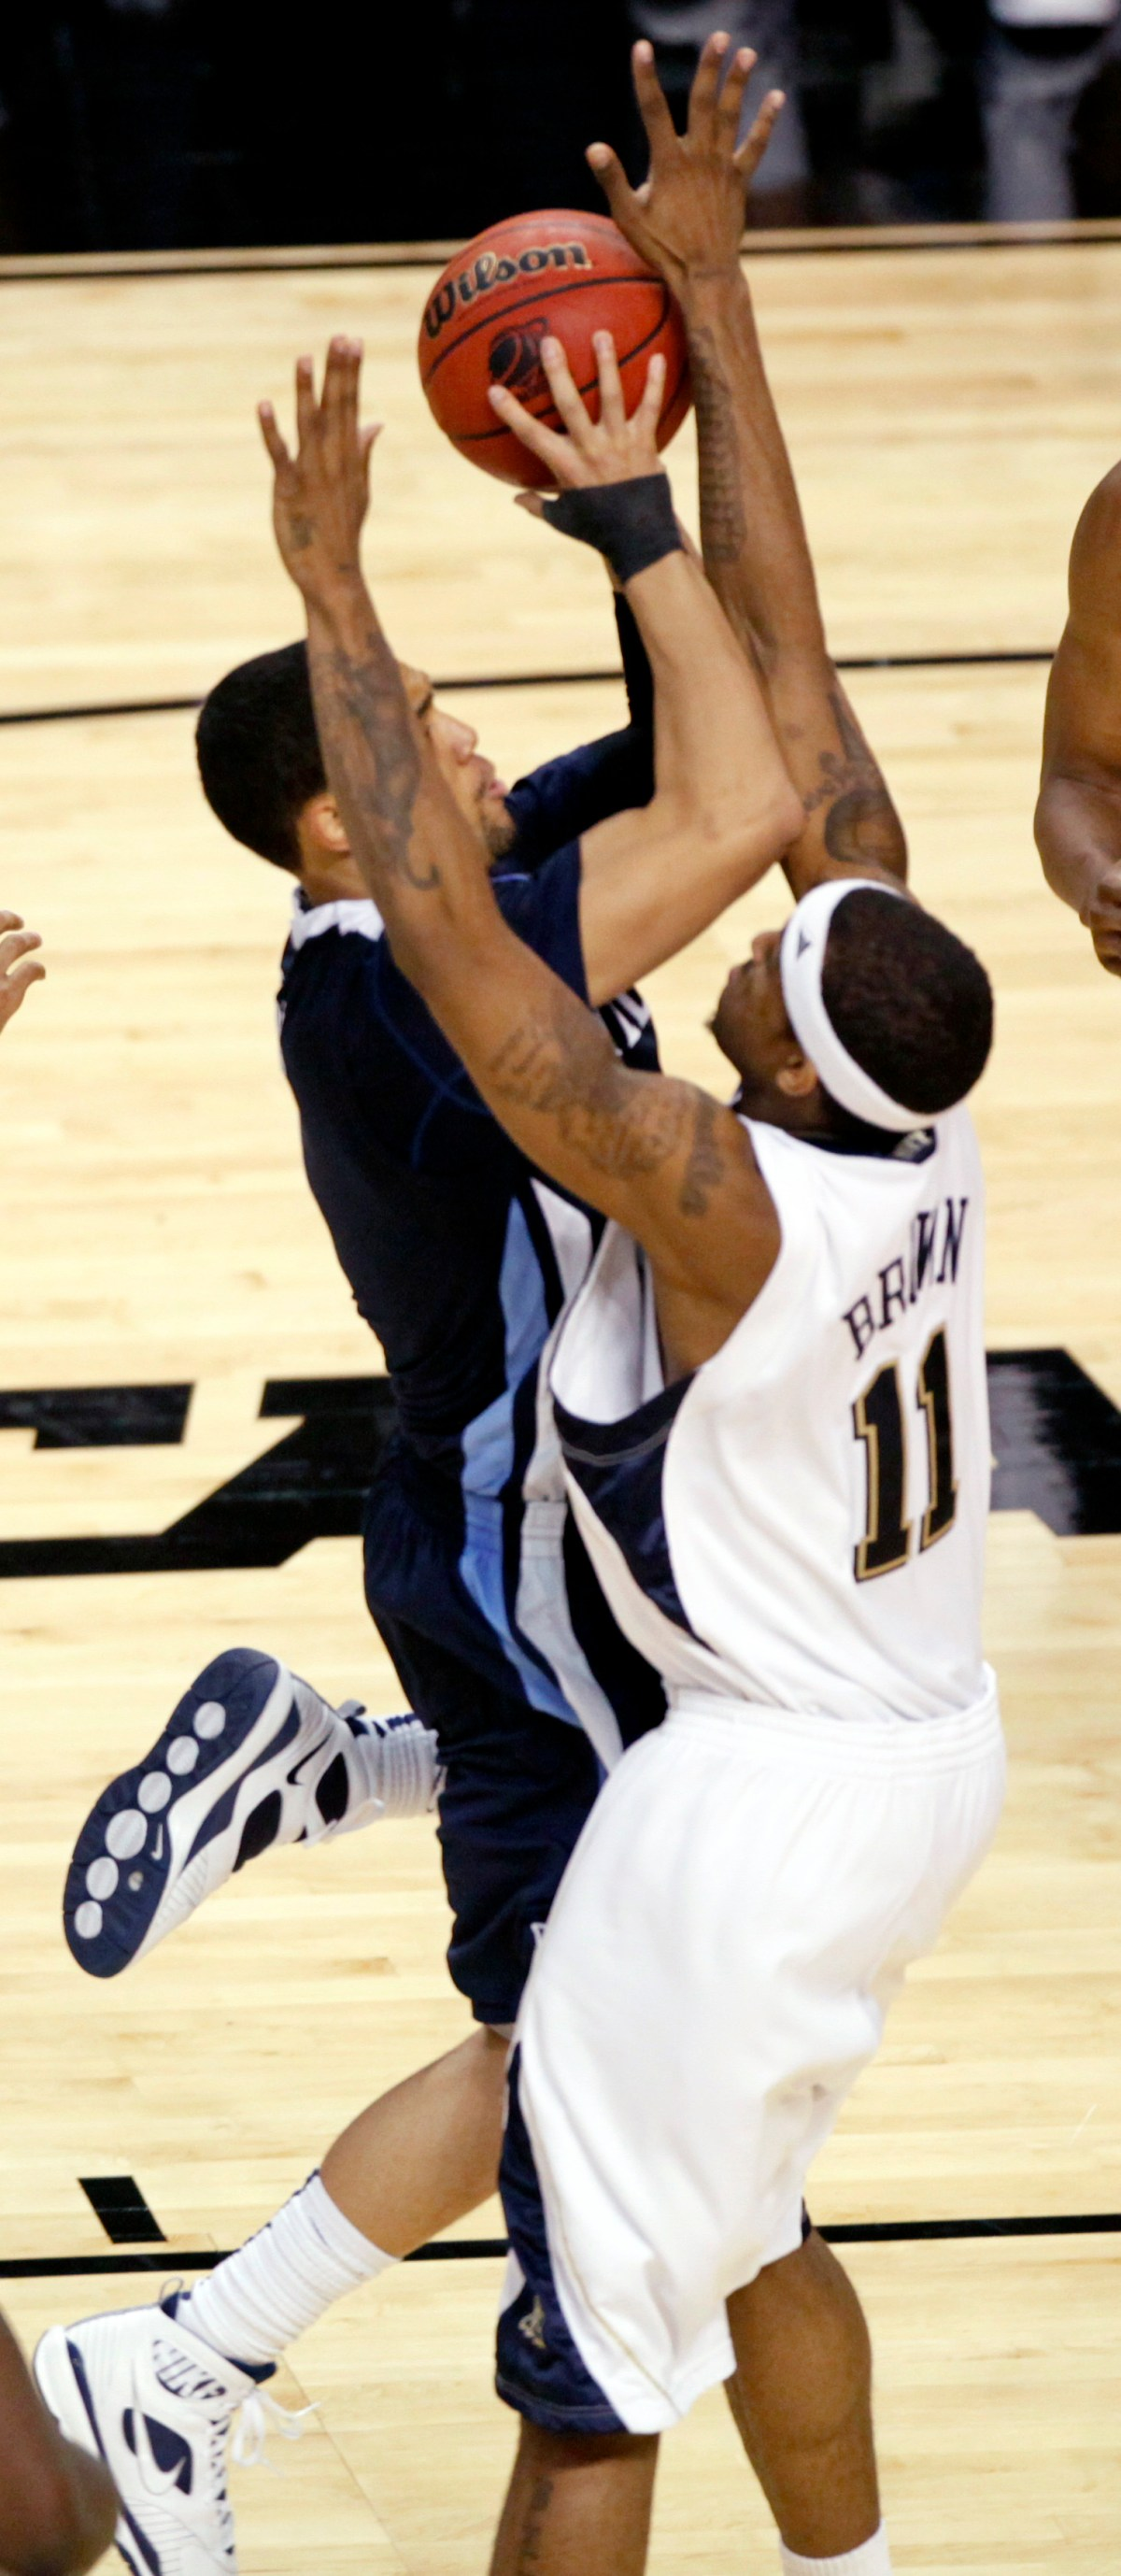 Villanova guard Scottie Reynolds (1) goes up for the winning basket against Pittsburgh's Gilbert Brown (11) in the second half during a men's NCAA tournament regional championship college basketball game in  Boston, Saturday, March 28, 2009. Villanova won 78-76 to advance to the Final Four. (AP Photo/Stephan Savoia)